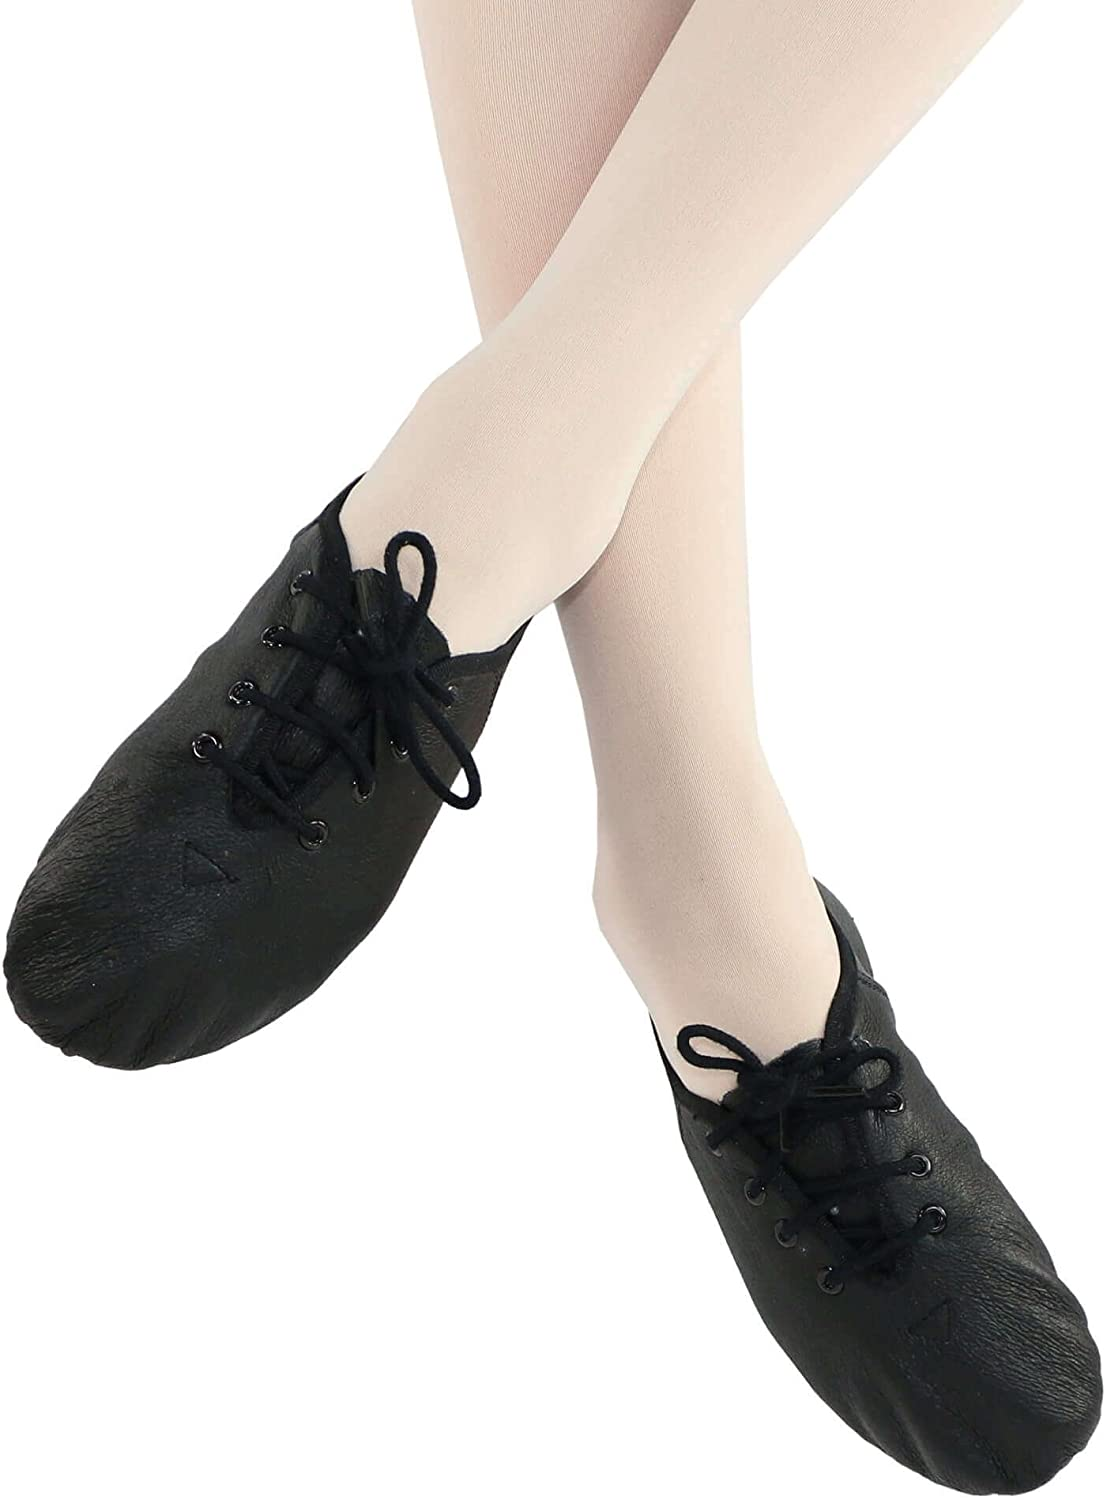 Danzcue Womens Leather Lace up Jazz Shoes